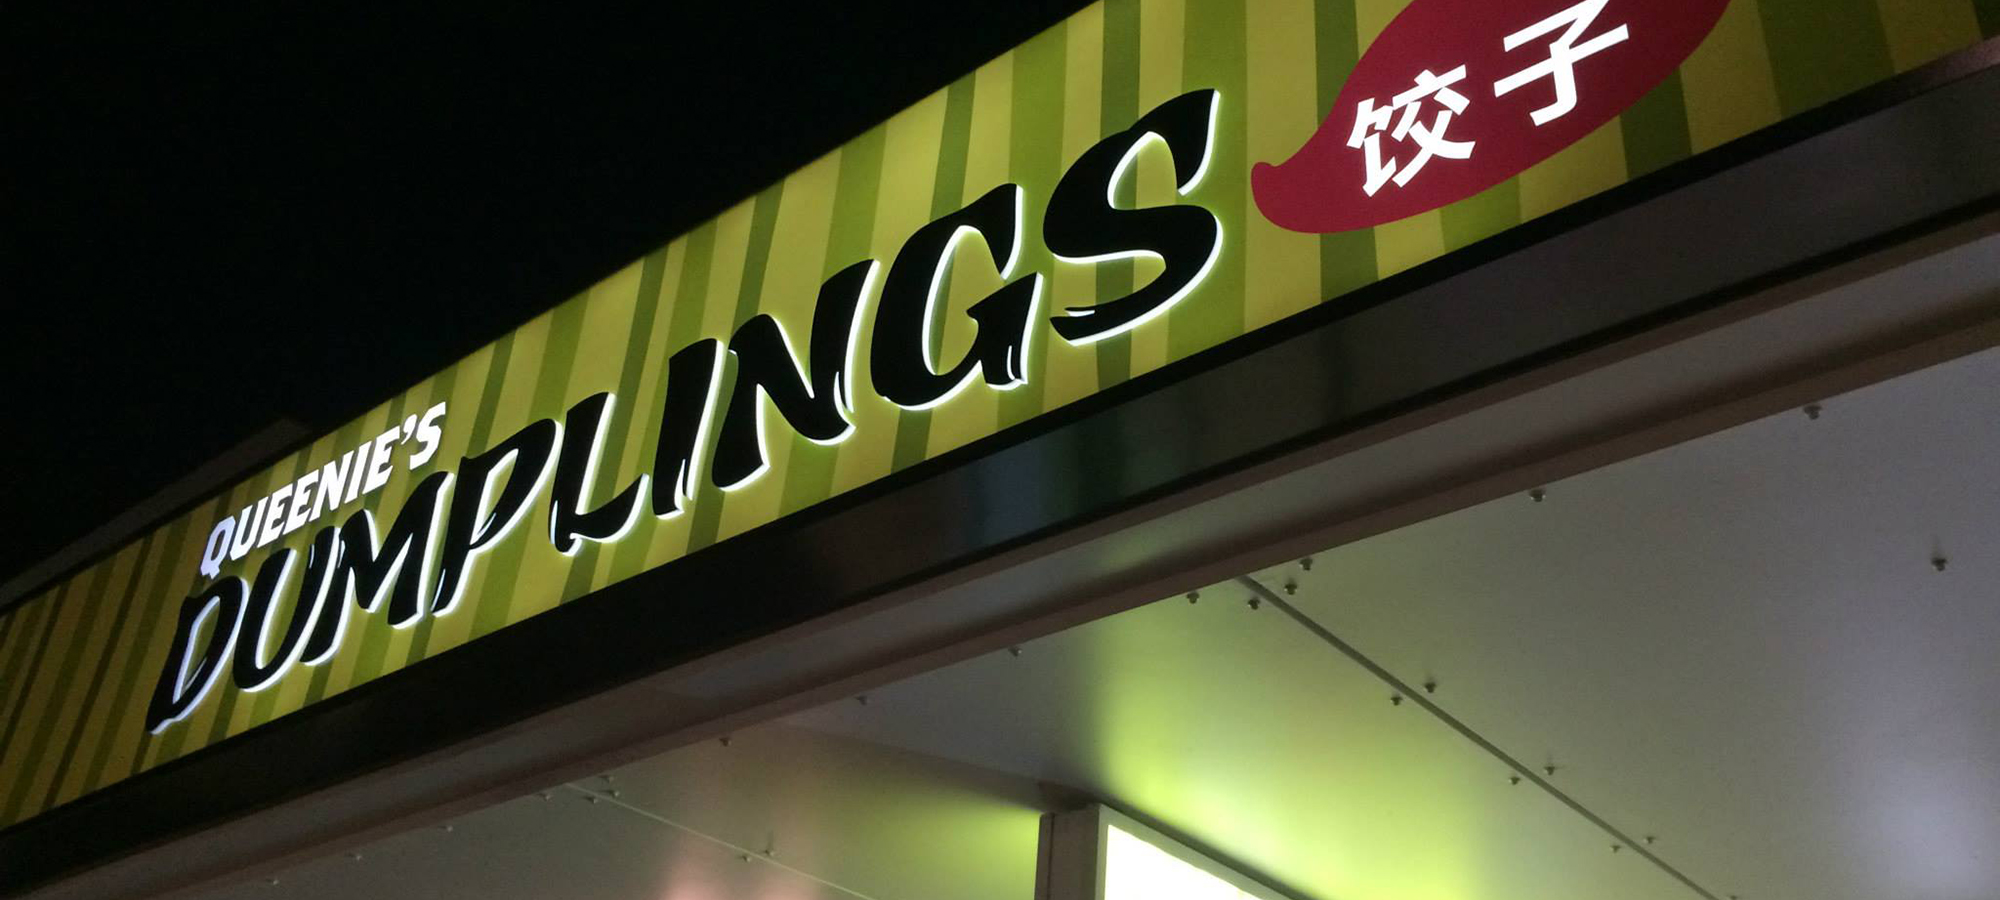 Queenies Dumplings Store